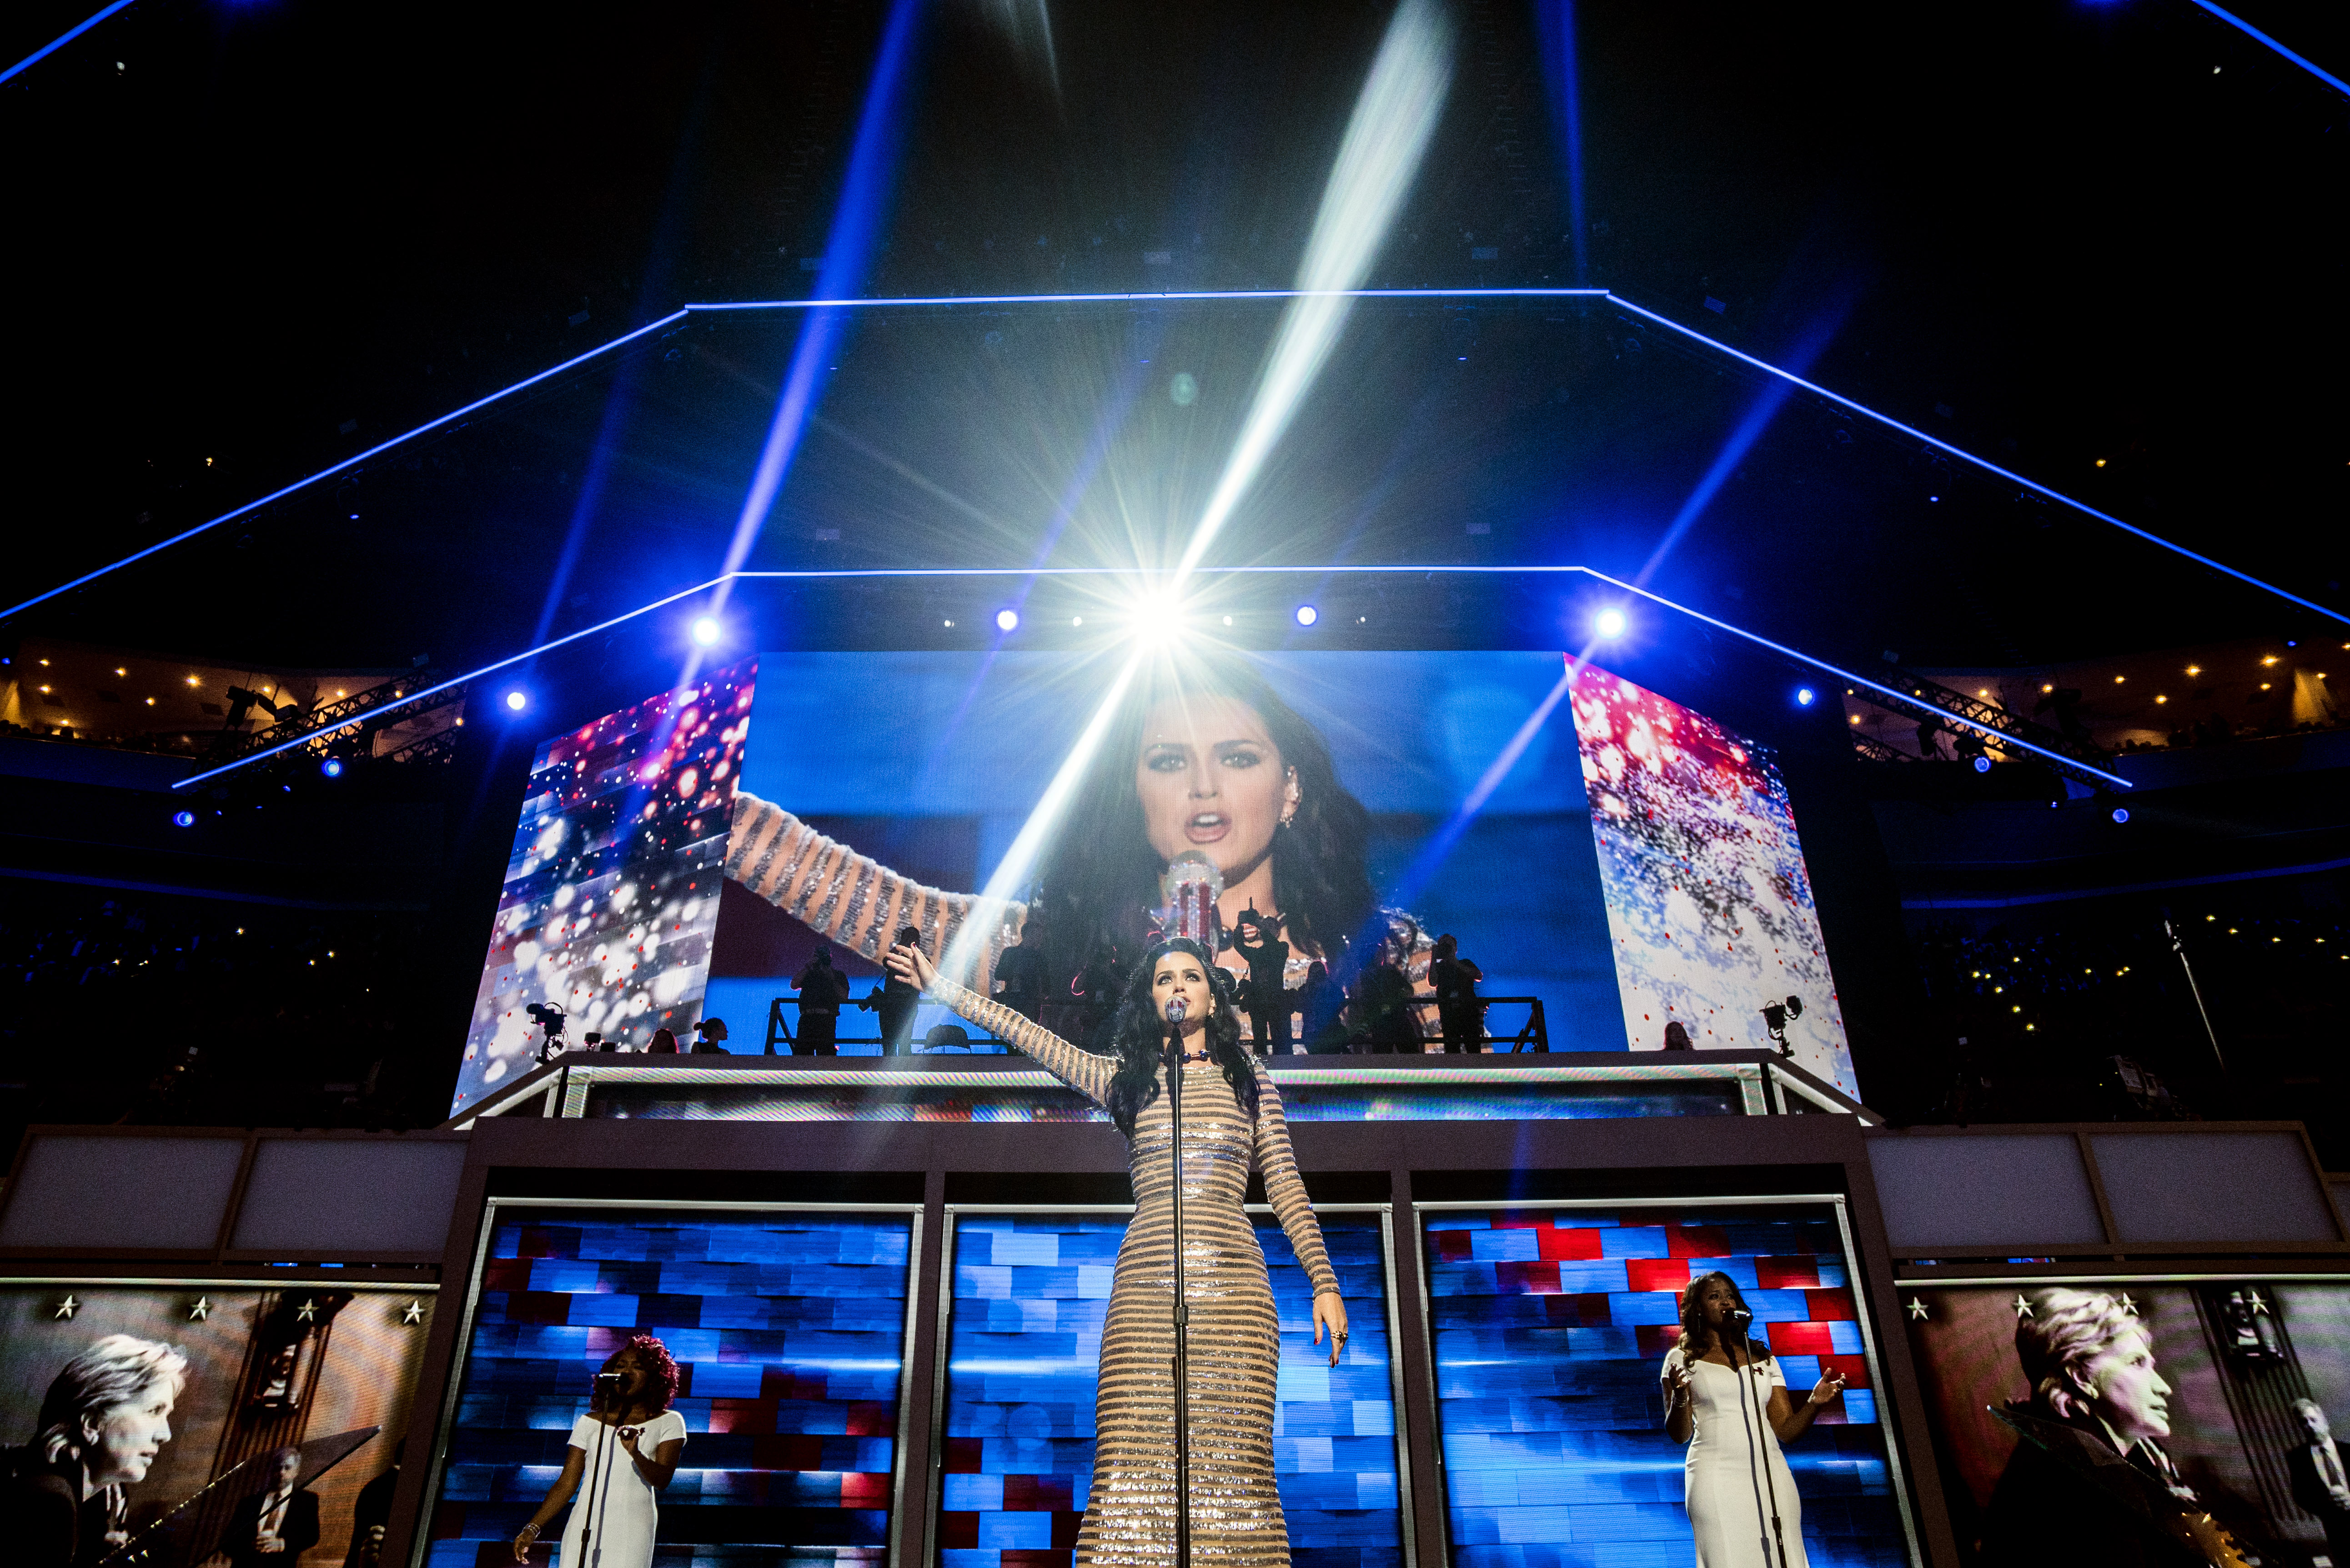 Katy Perry performs at the Democratic National Convention in Philadelphia on July 28, 2016.